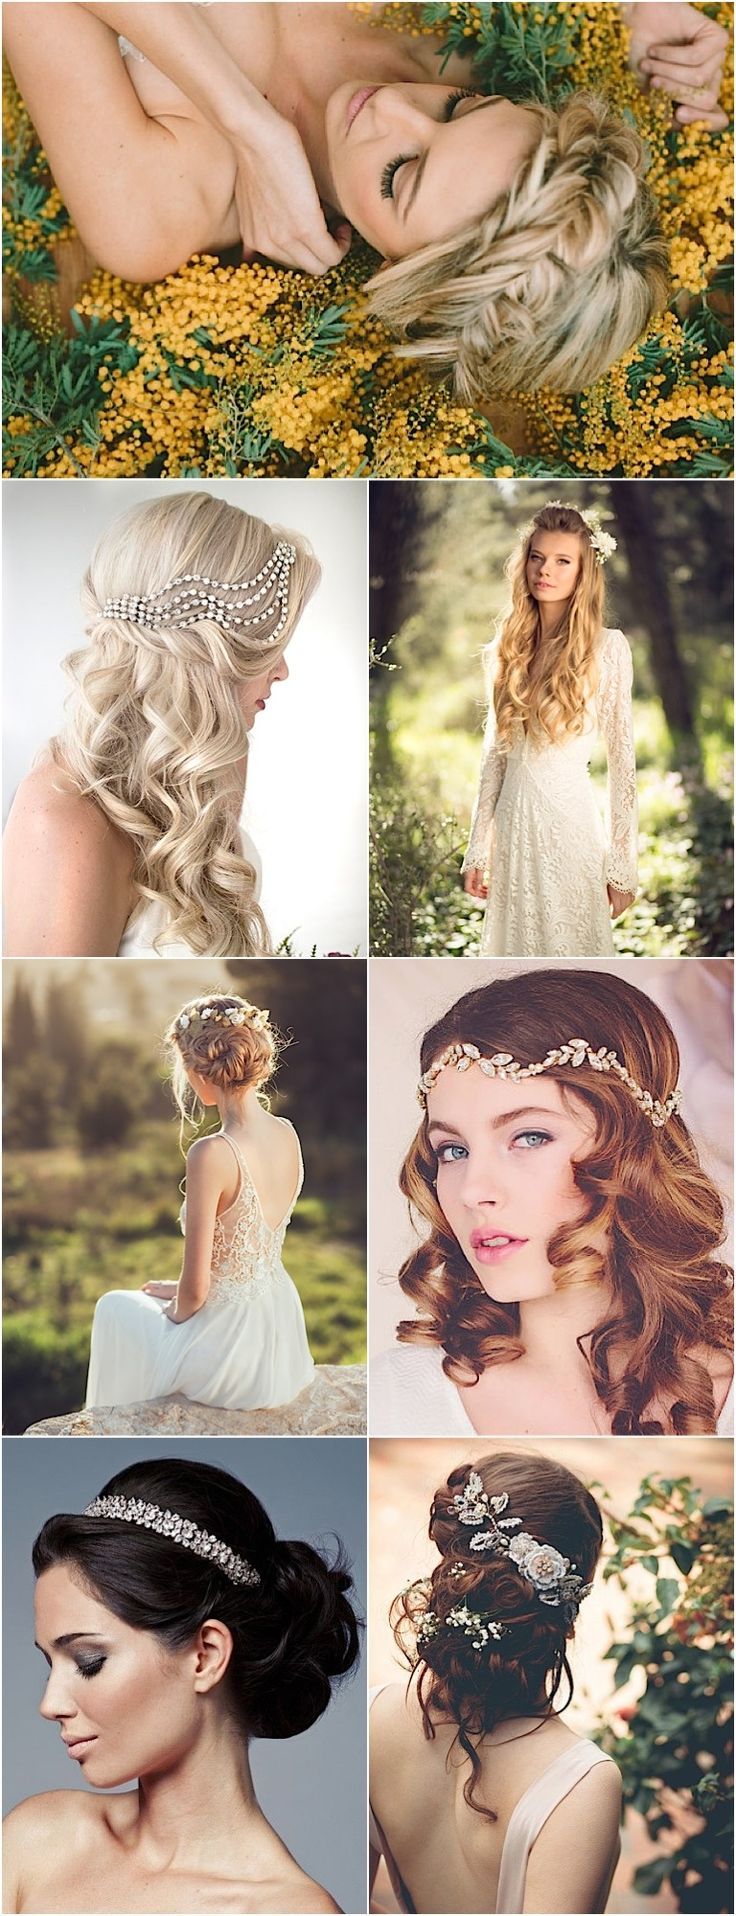 After the dress, then comes hair and makeup! If you've made it to this point, congratulations! Selecting from tons and tons of fabulous wedding hairstyles will be fun. Whether you're going for a chic and textured updo or a long braided style, we've got some lovely ideas to show you to glamorize you'll look while […]